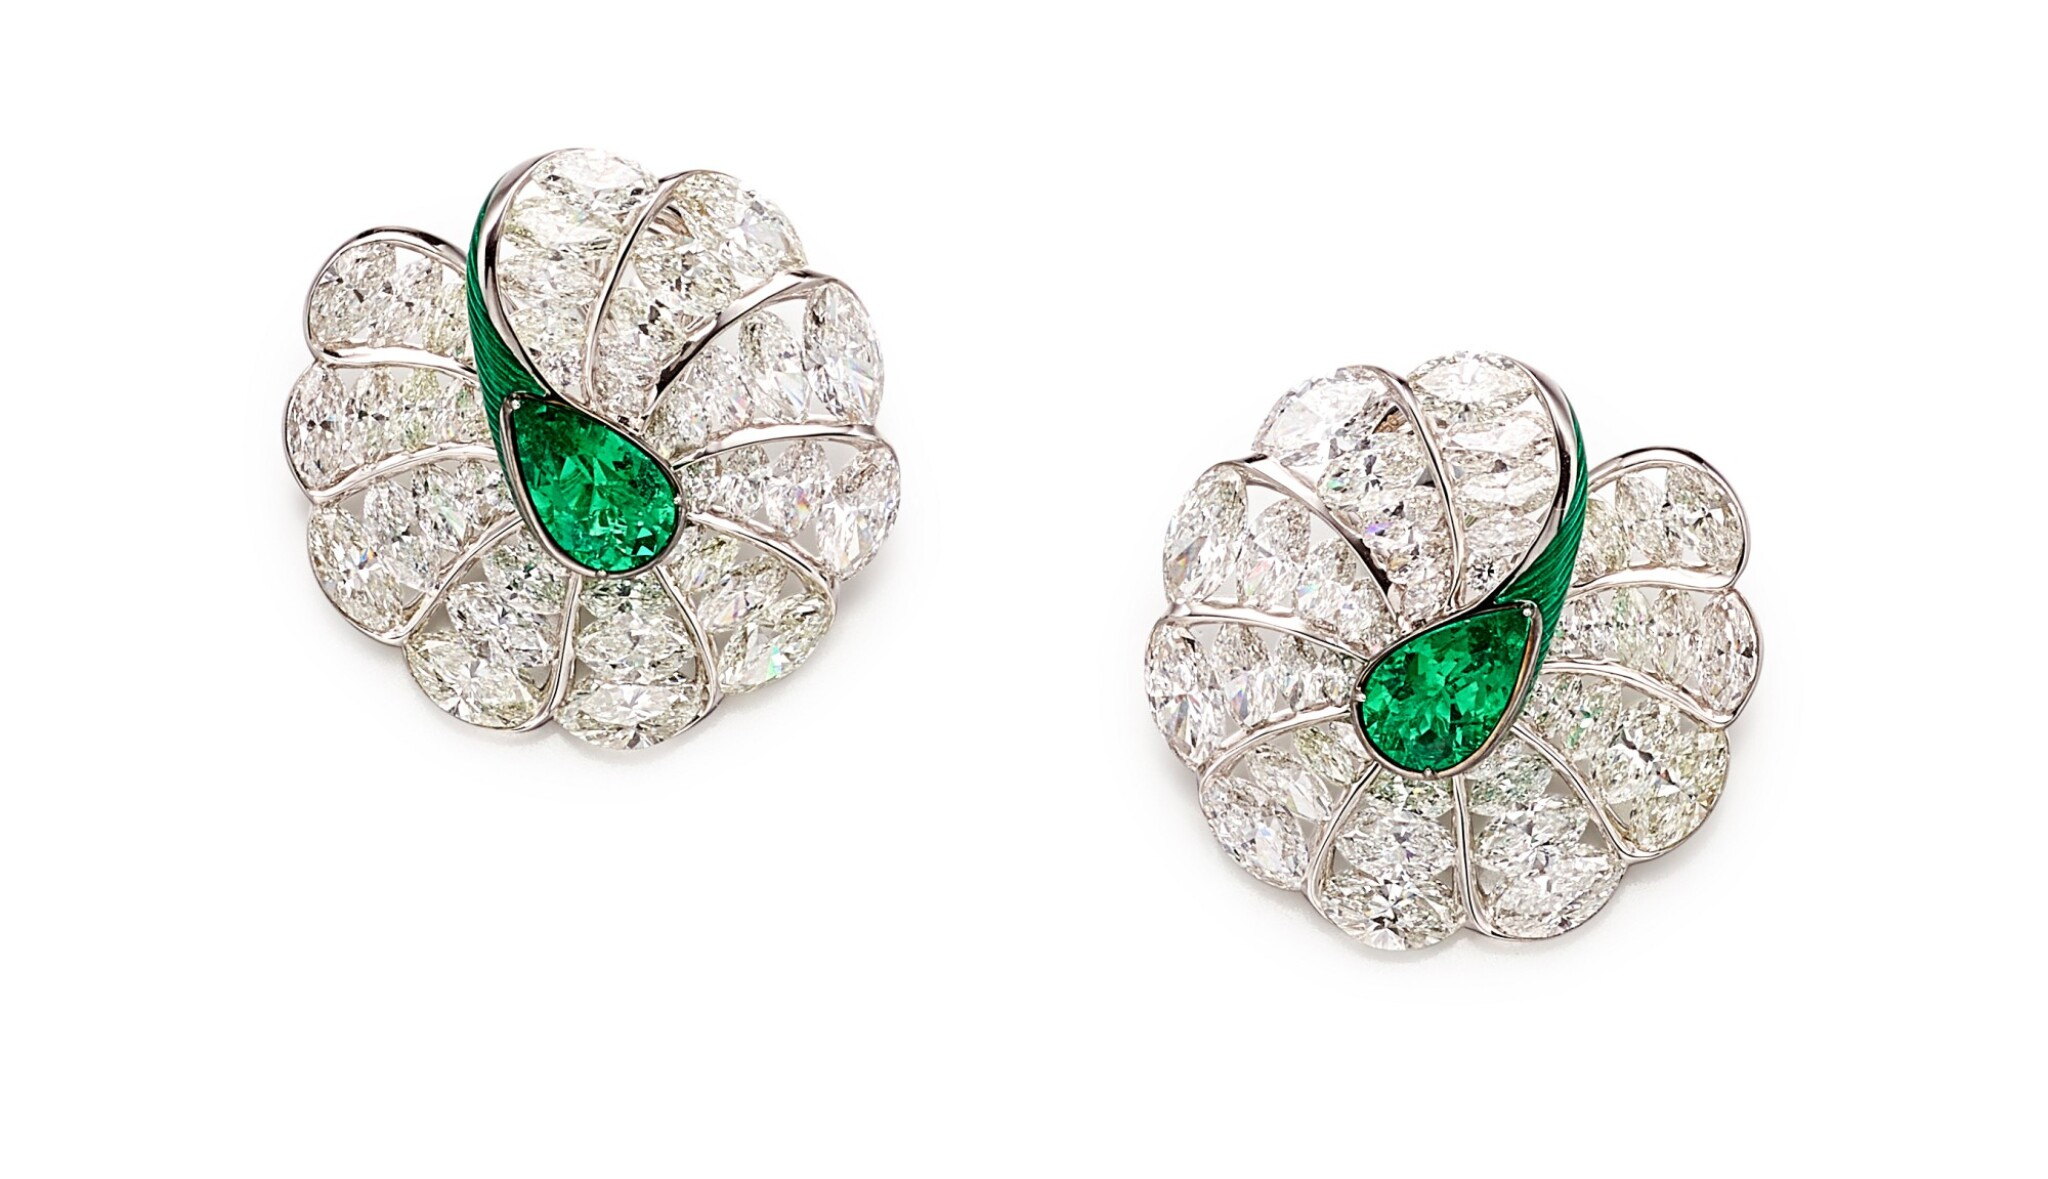 View 1 of Lot 1742. FORMS | PAIR OF EMERALD, DIAMOND AND ENAMEL EARRINGS | FORMS |「哥倫比亞」祖母綠 配 鑽石 及 琺琅彩 耳環一對.